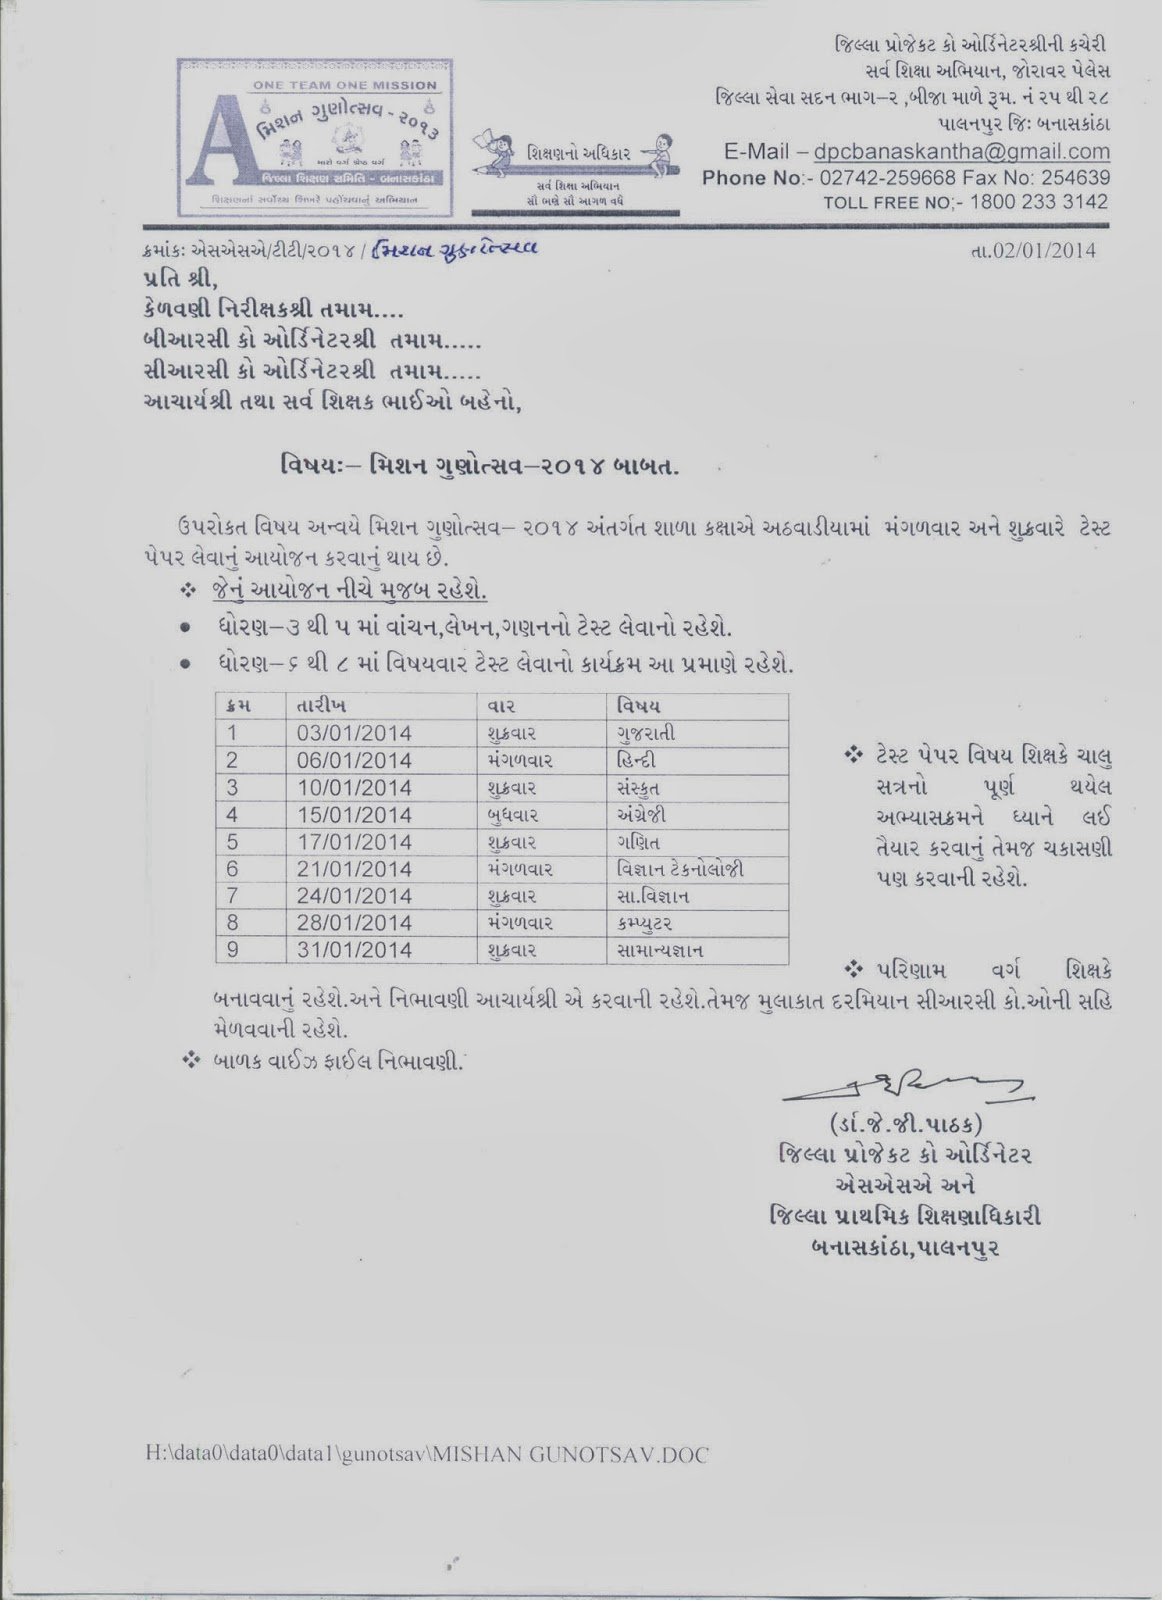 Mission Gunotsav 2014 January School Test Time Table